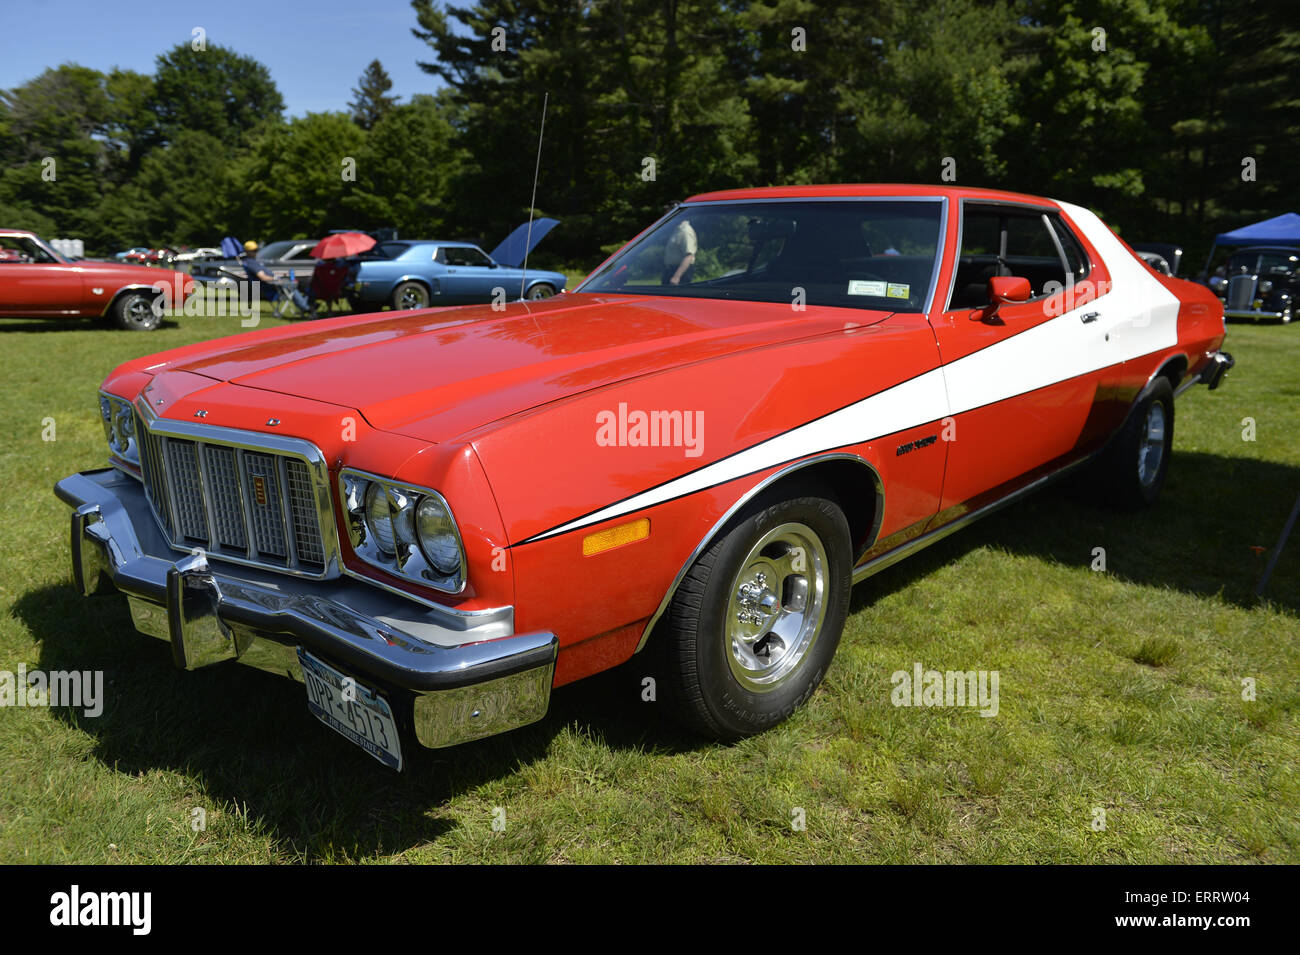 New Ford Gran Torino >> June 7 2015 Old Westbury New York United States A Red And